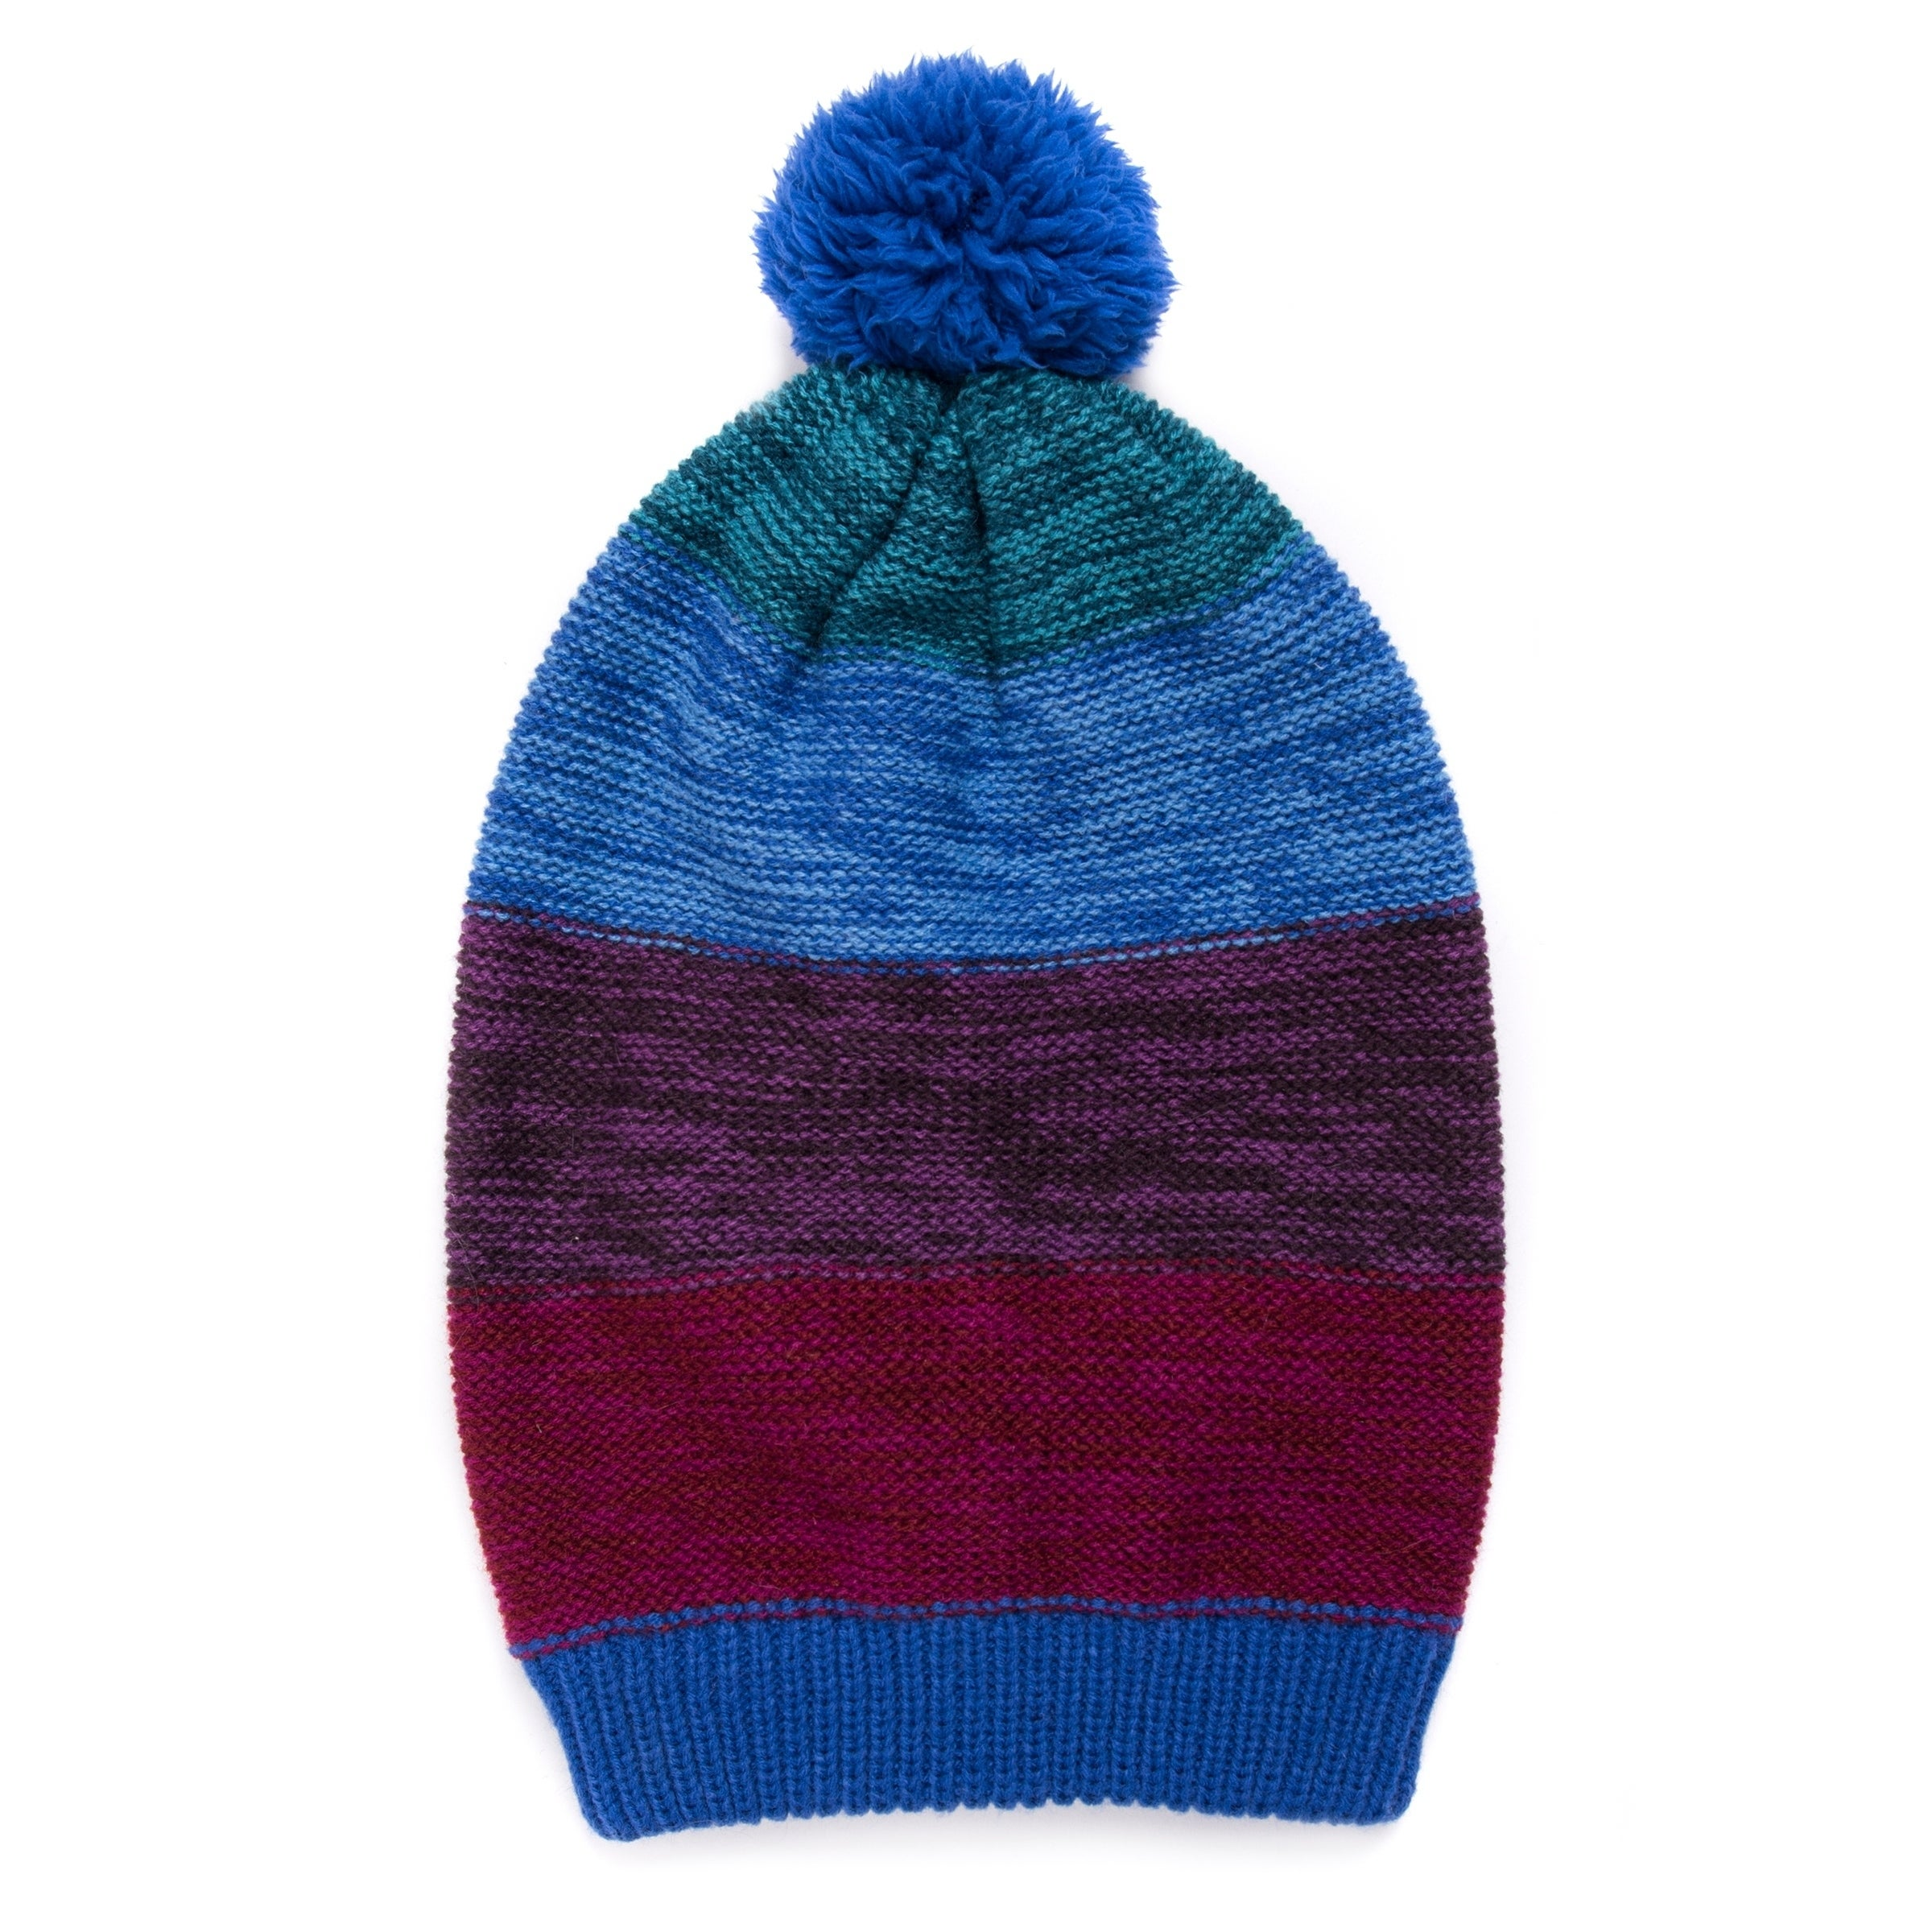 8131979ad9959 Shop MUK LUKS® Women s Slouch Beanie - Free Shipping On Orders Over  45 -  Overstock - 23015840